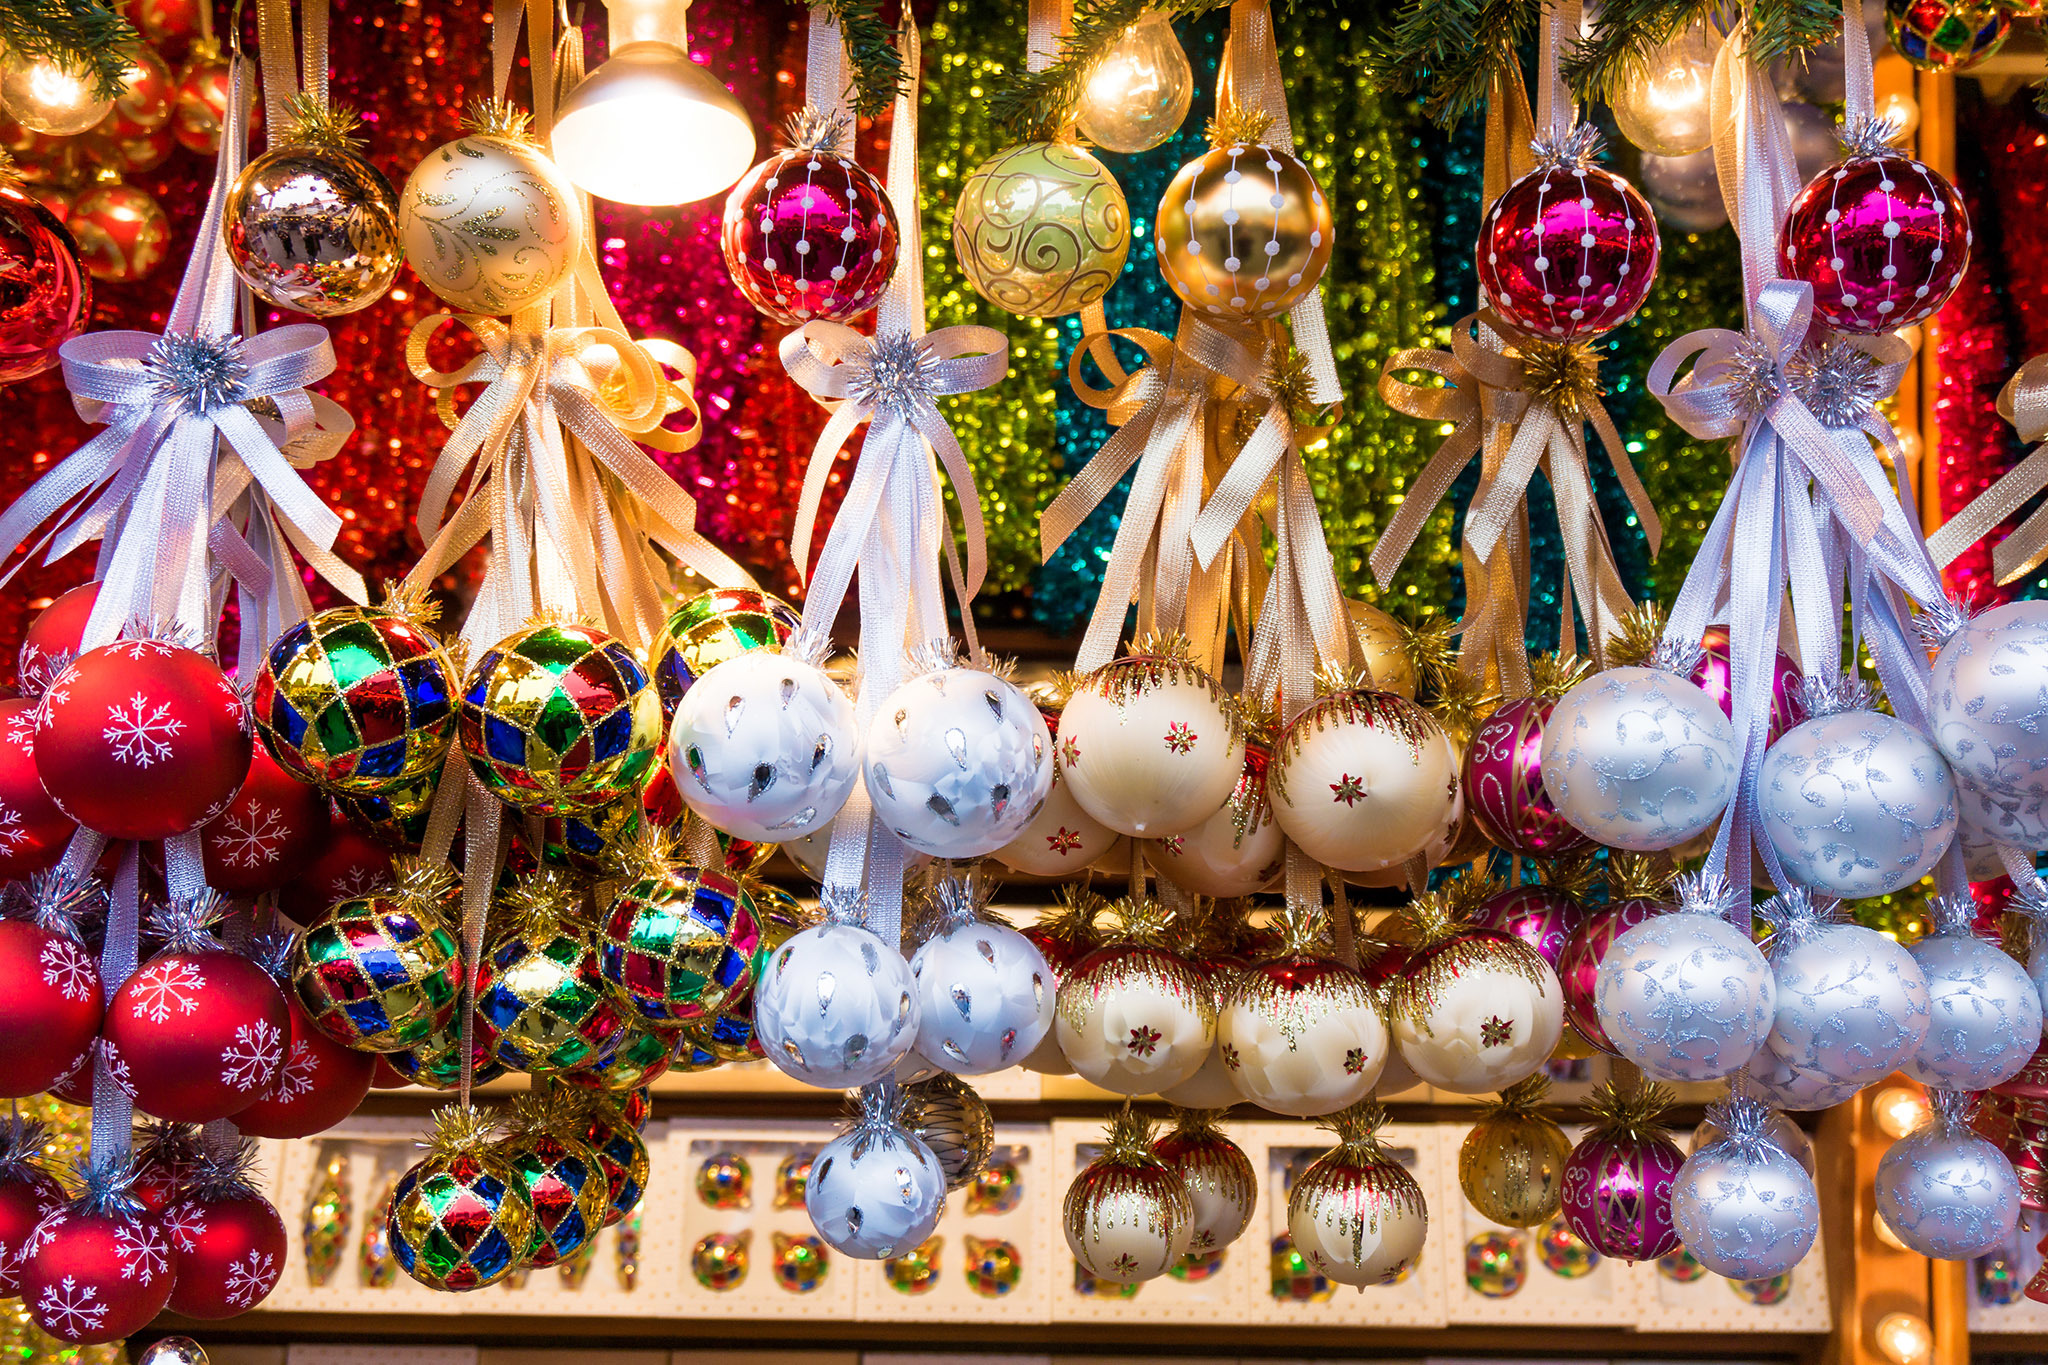 Best ornament shops in NYC for all your Christmas decoration needs